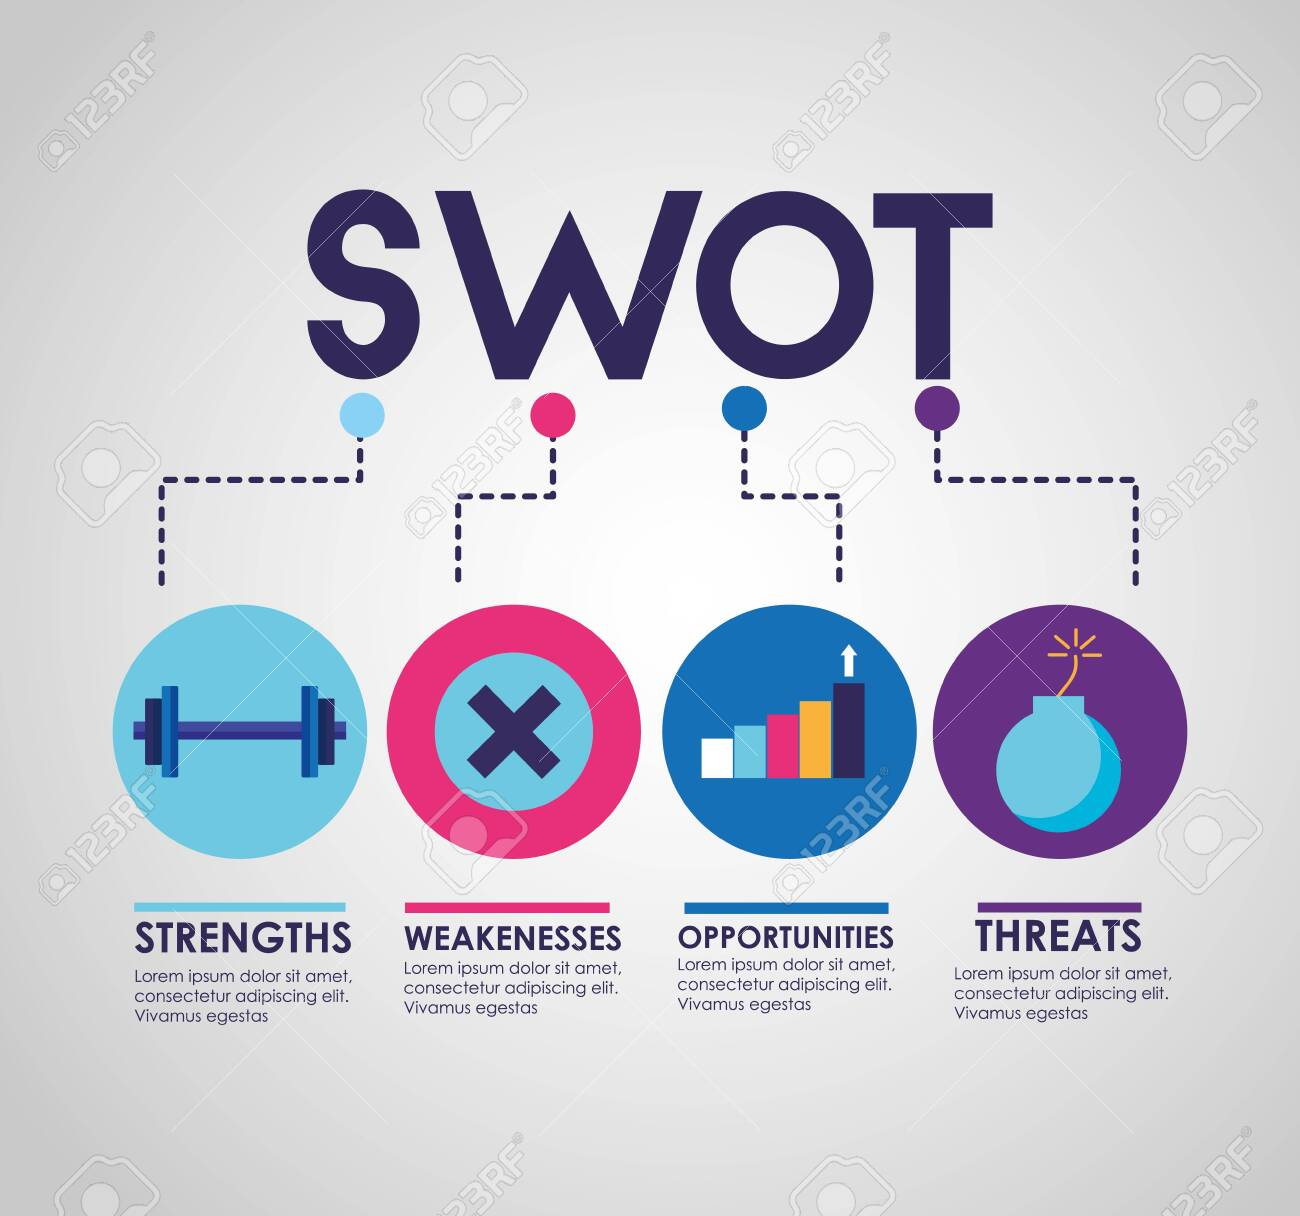 swot infographic analysis, colors graphic stats vector illustration - 124146648